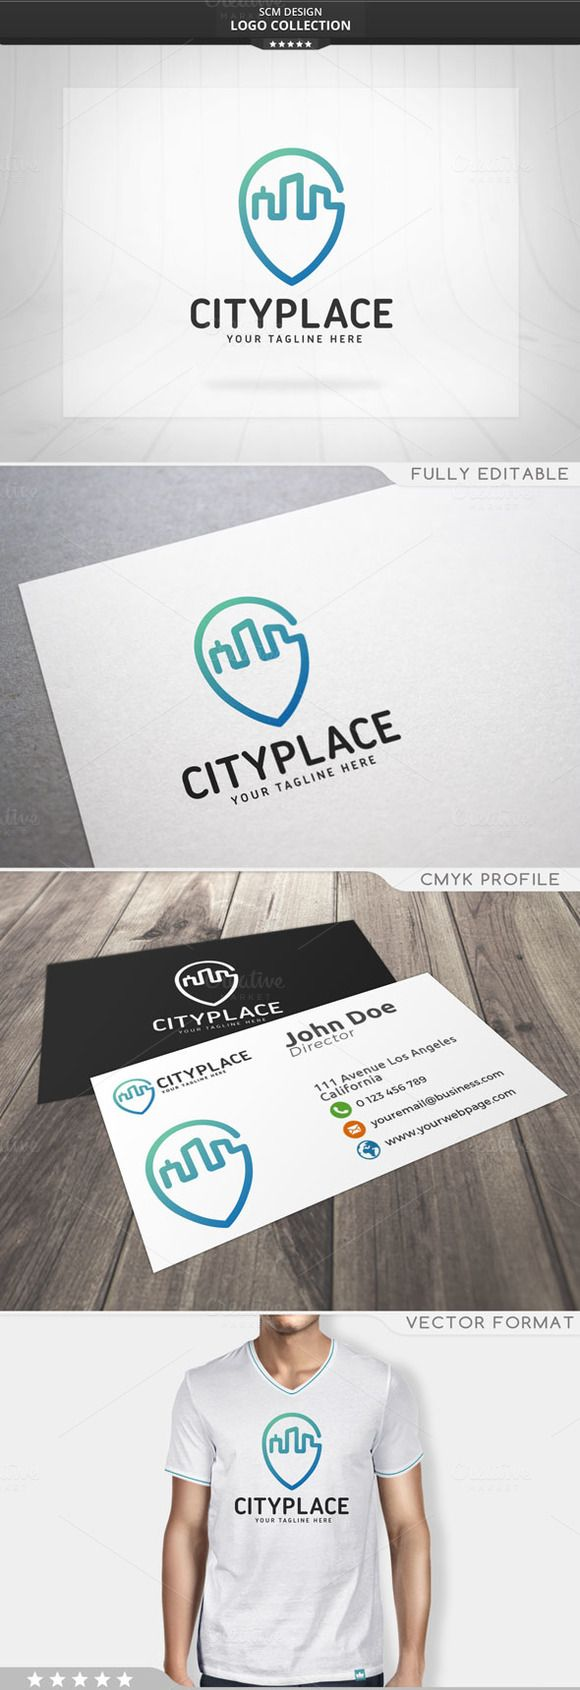 City Place Logo by Seceme Shop on @creativemarket